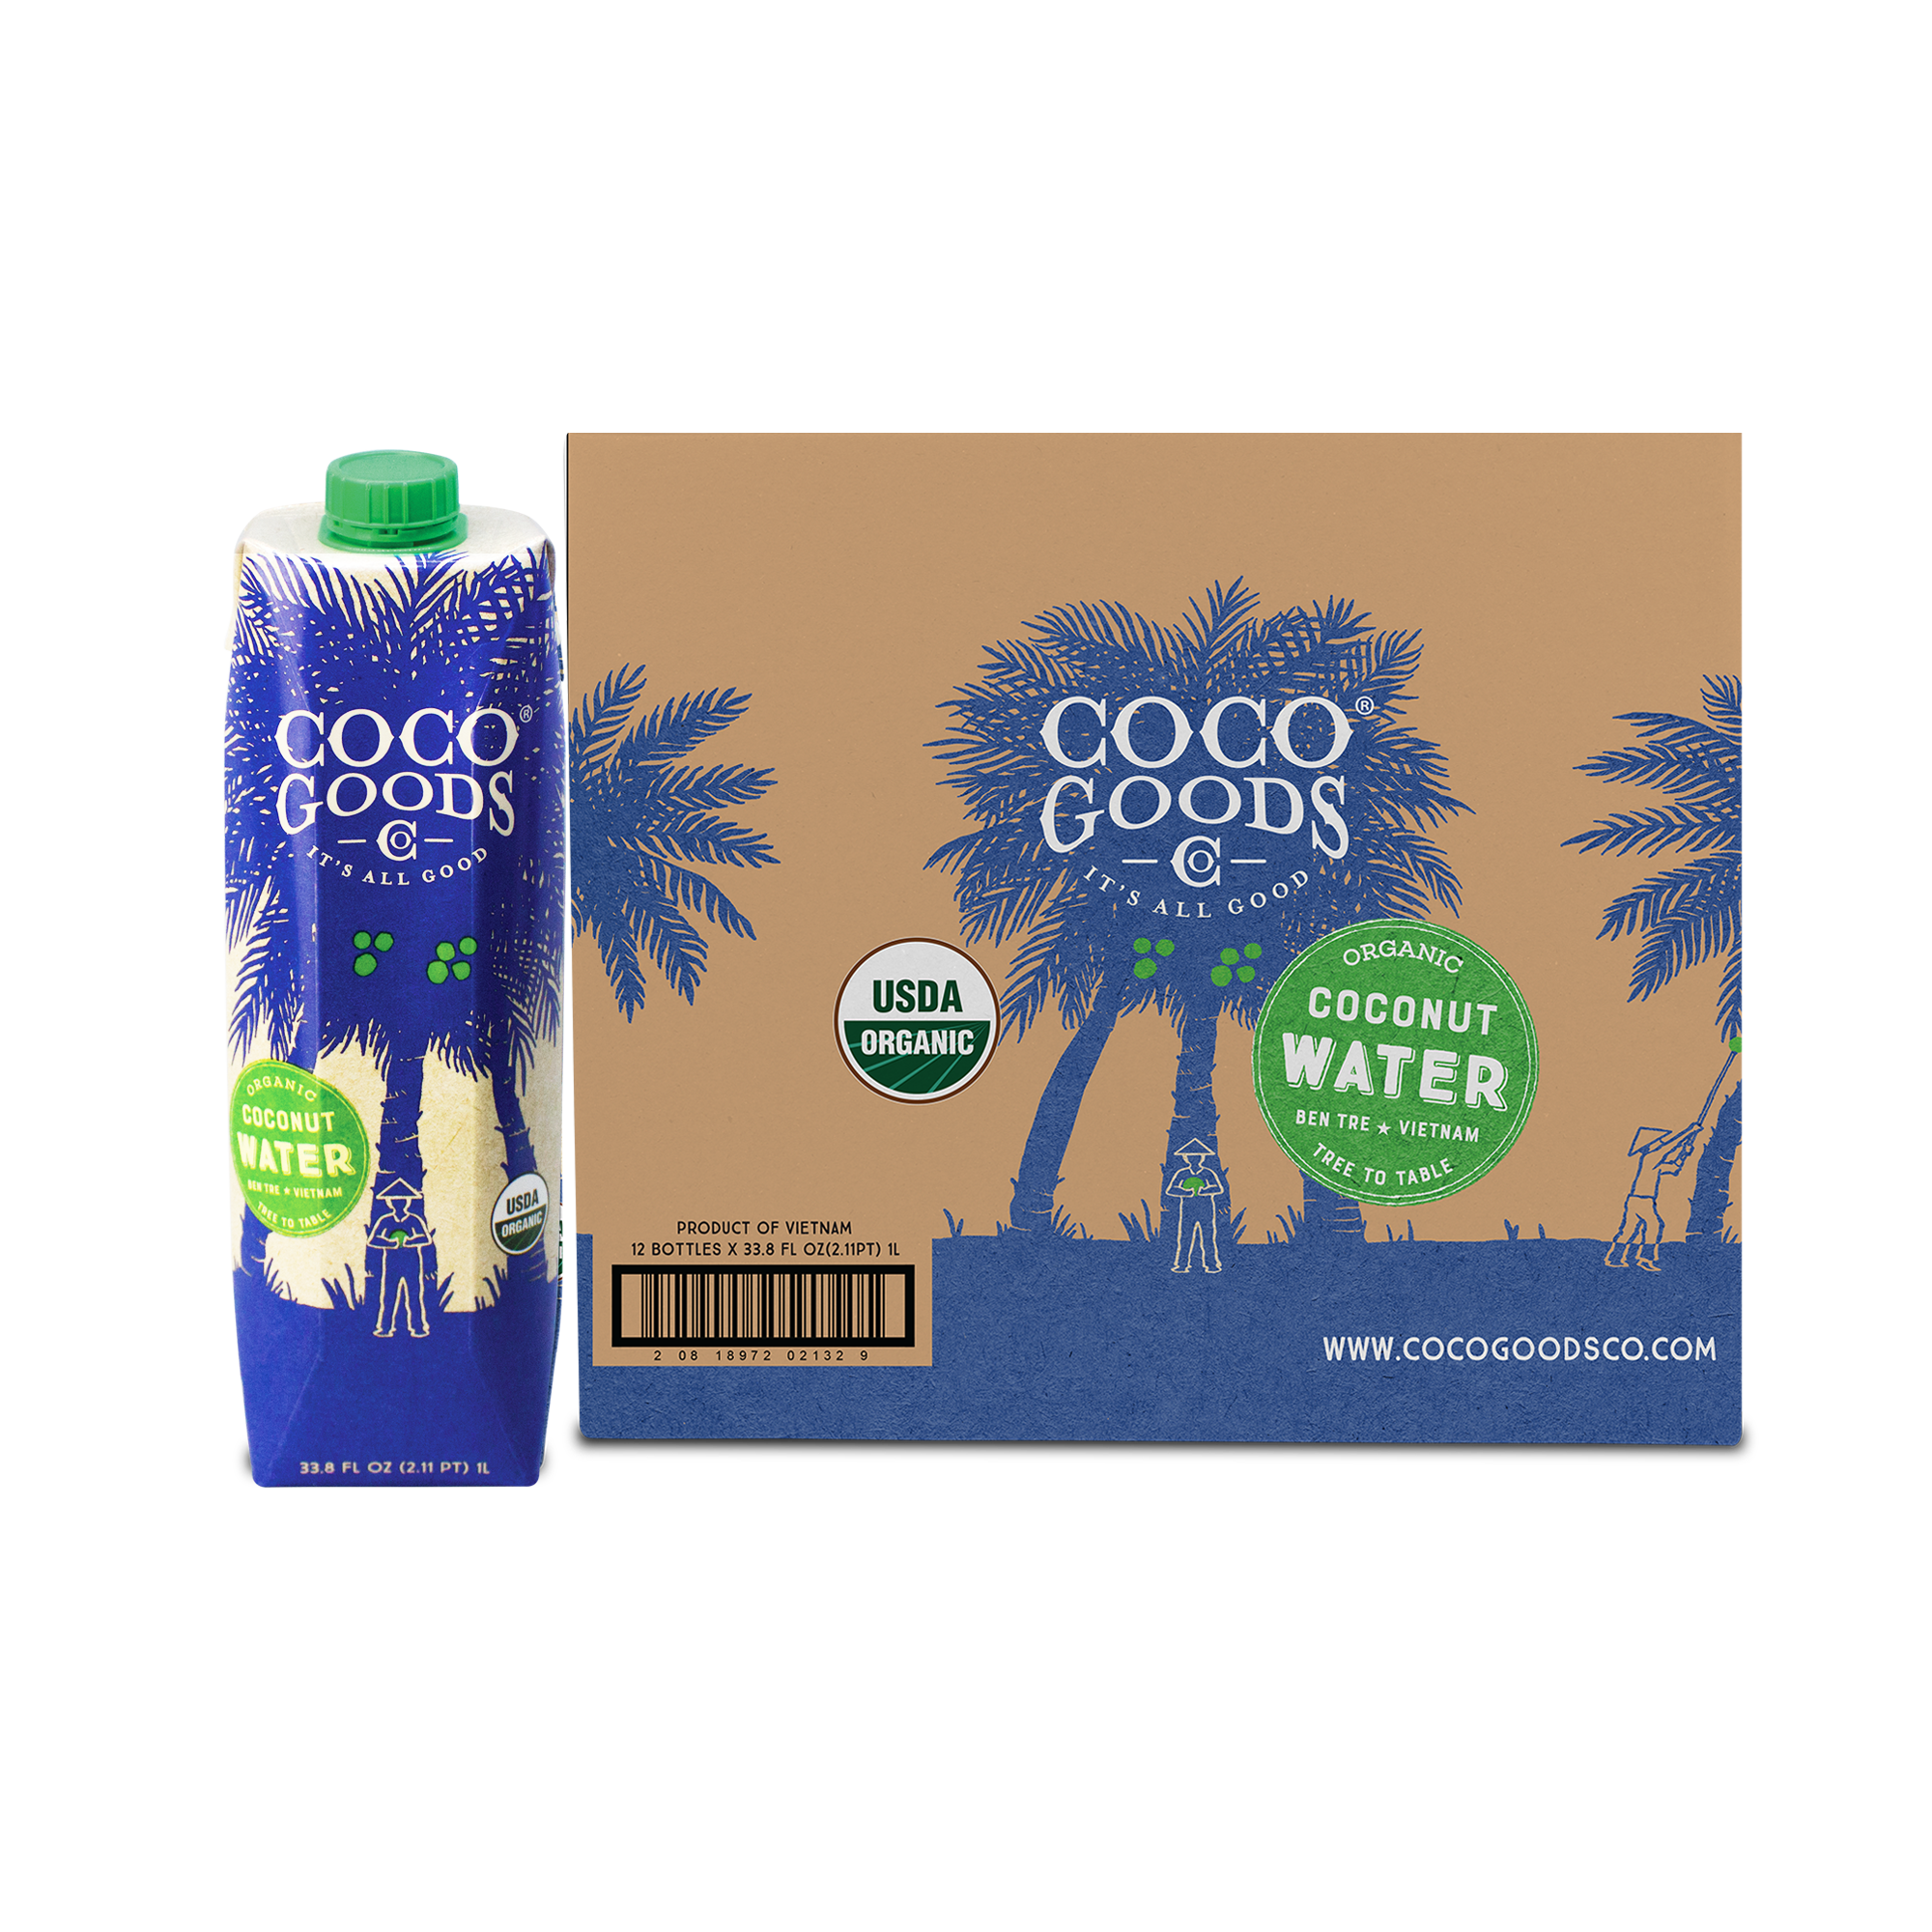 100% Organic Coconut Water 33.8 fl. oz, 6 pack